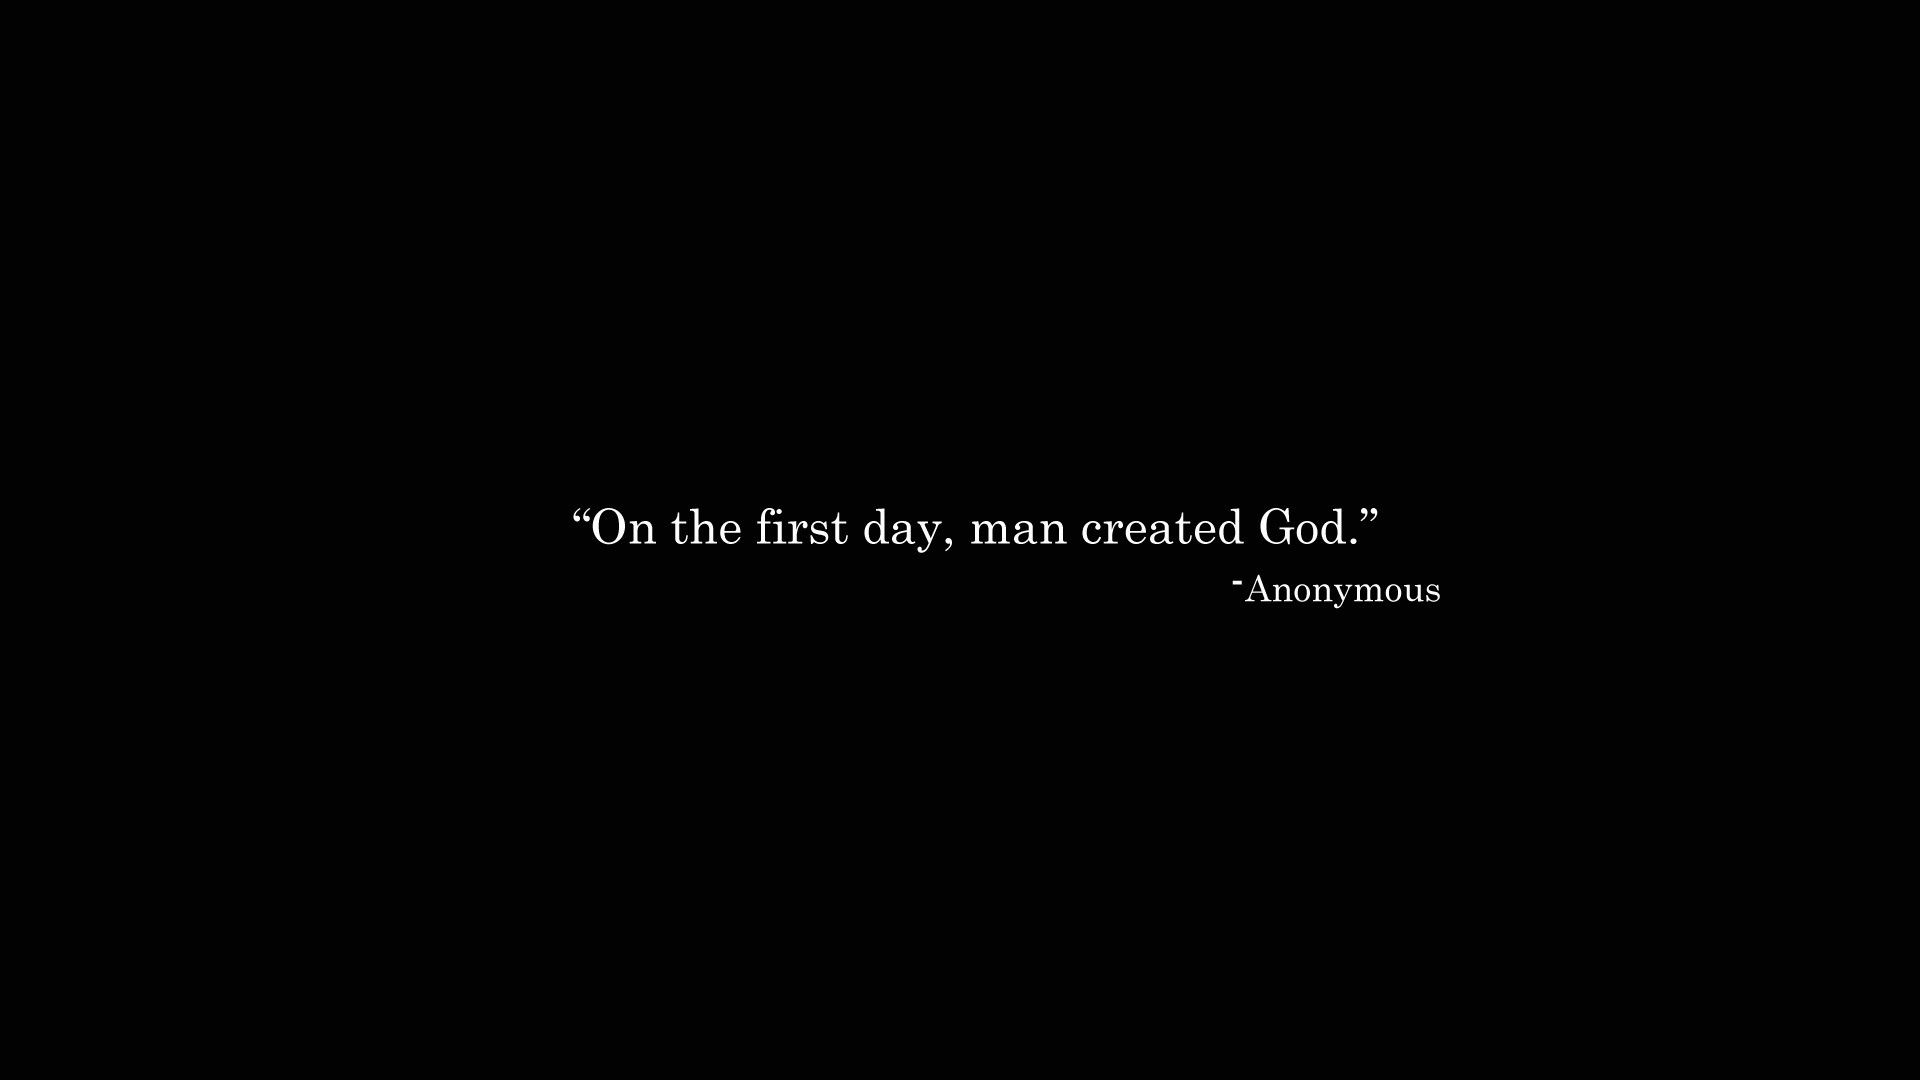 on the first day man created god wallpaper on the first day man created god typography hd desktop wallpaper